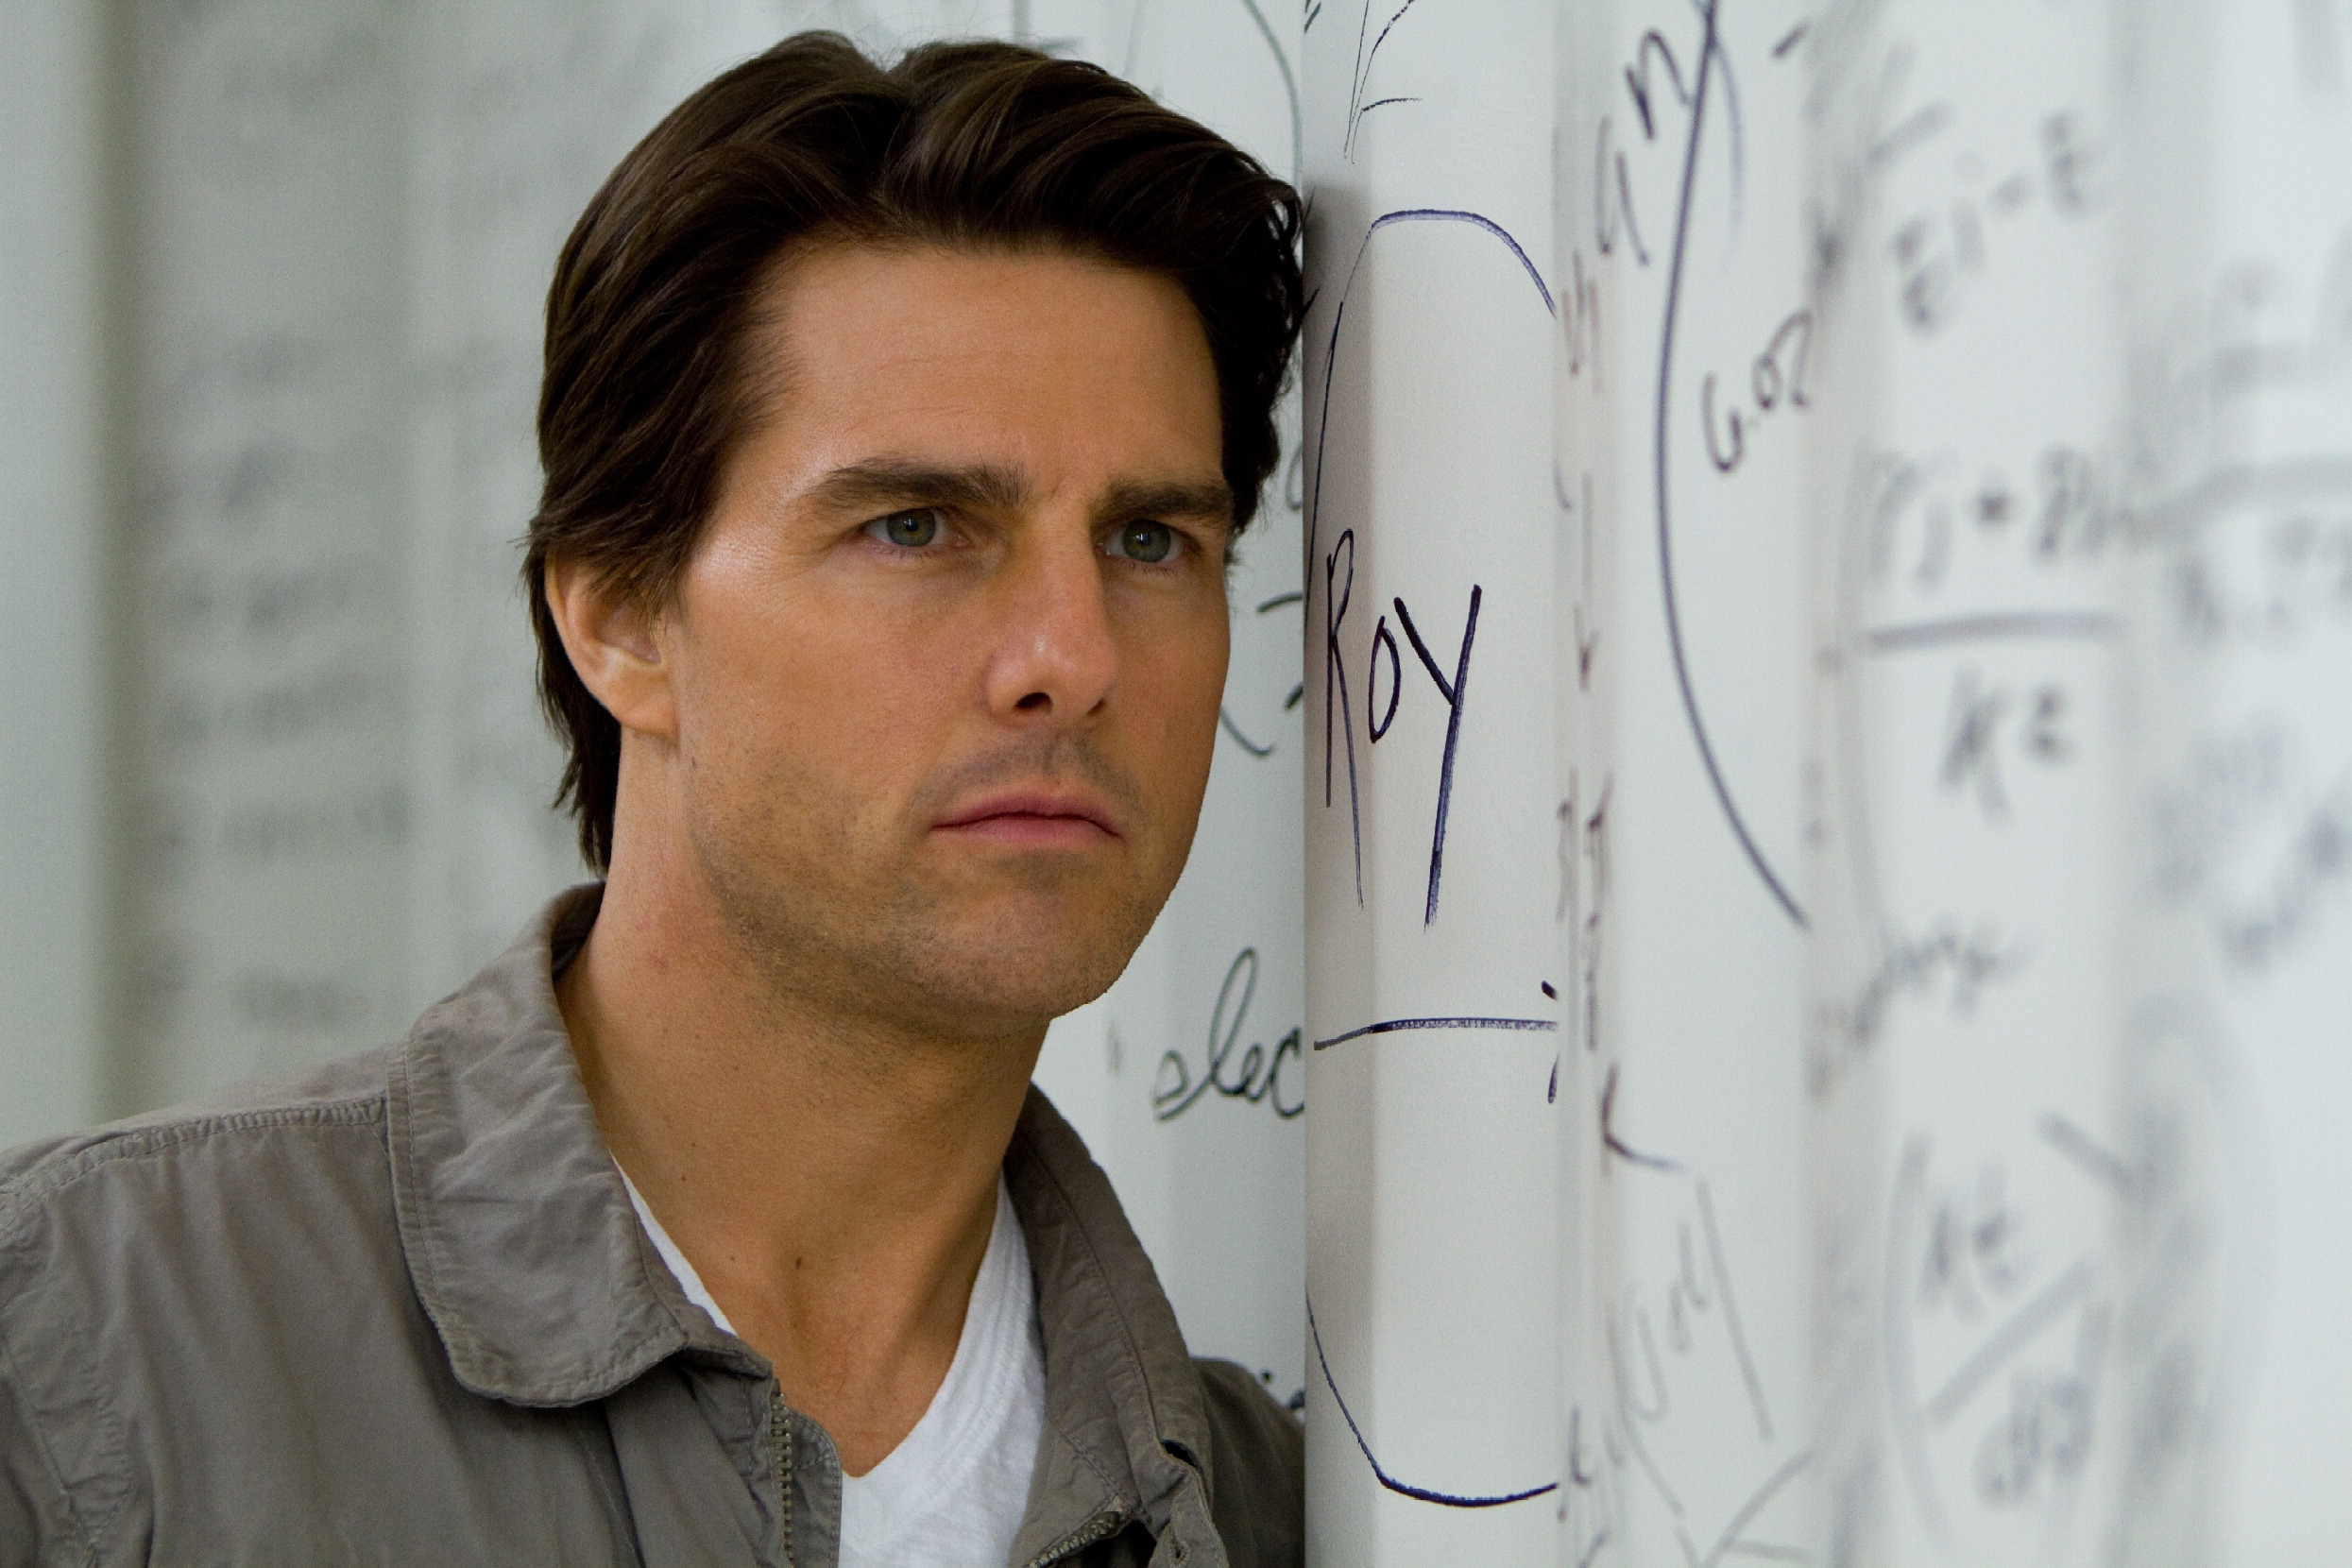 tom cruise wallpapers images photos pictures backgrounds